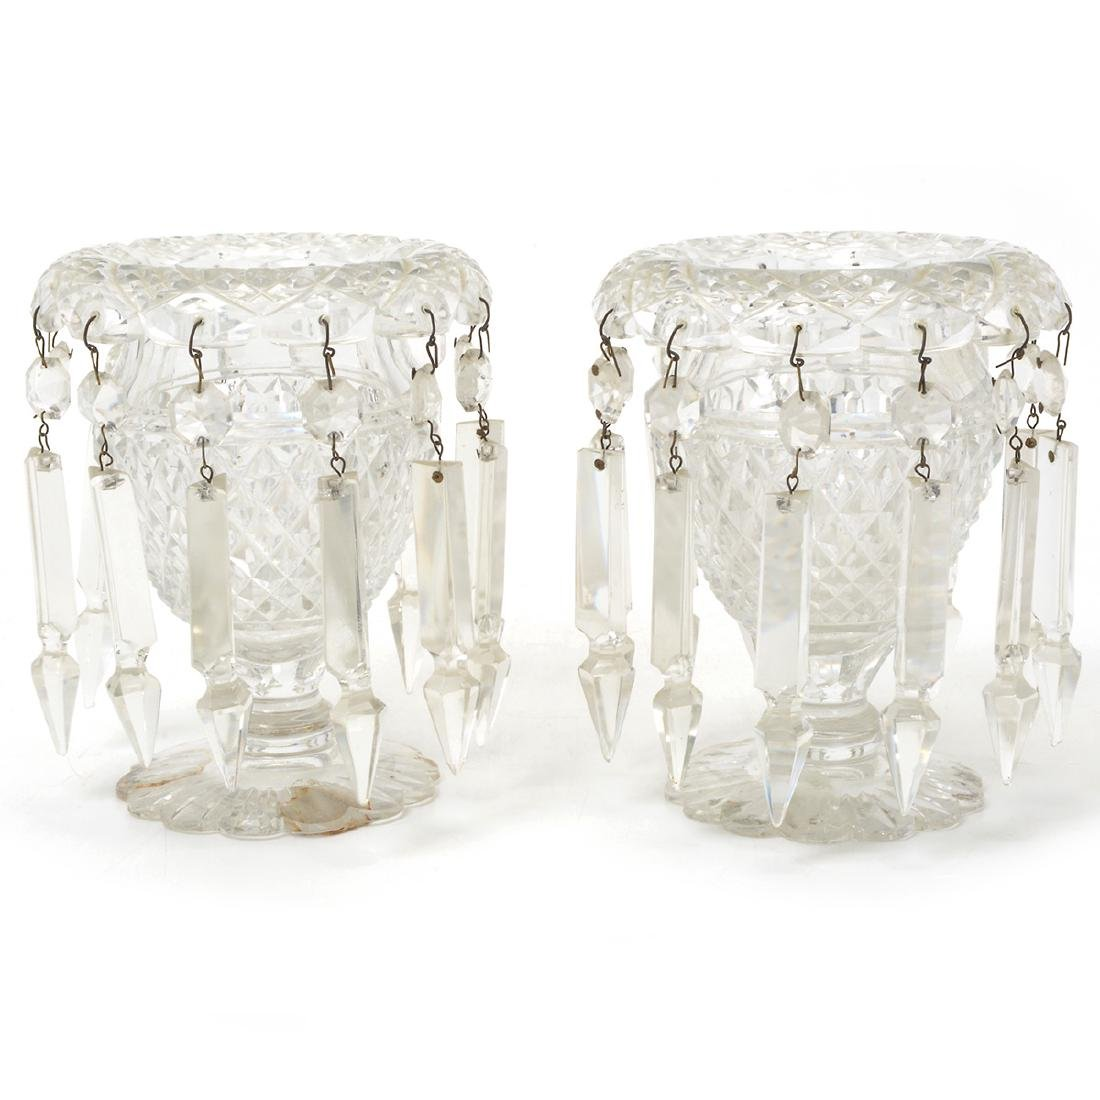 Pair of Victorian Cut Glass Lusters, Late 19th Century